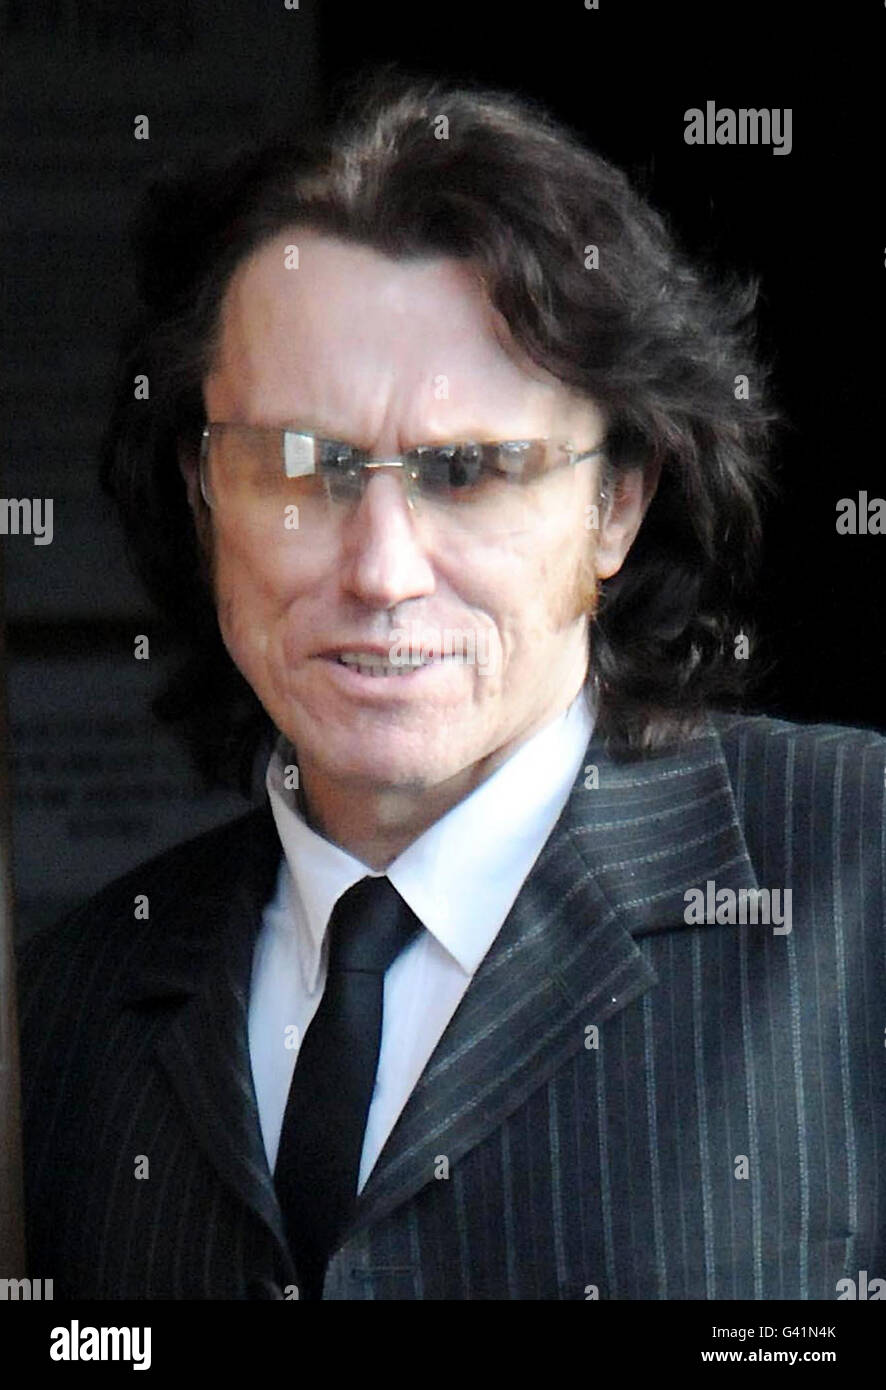 Elvis impersonator bailed on assault charge - Stock Image